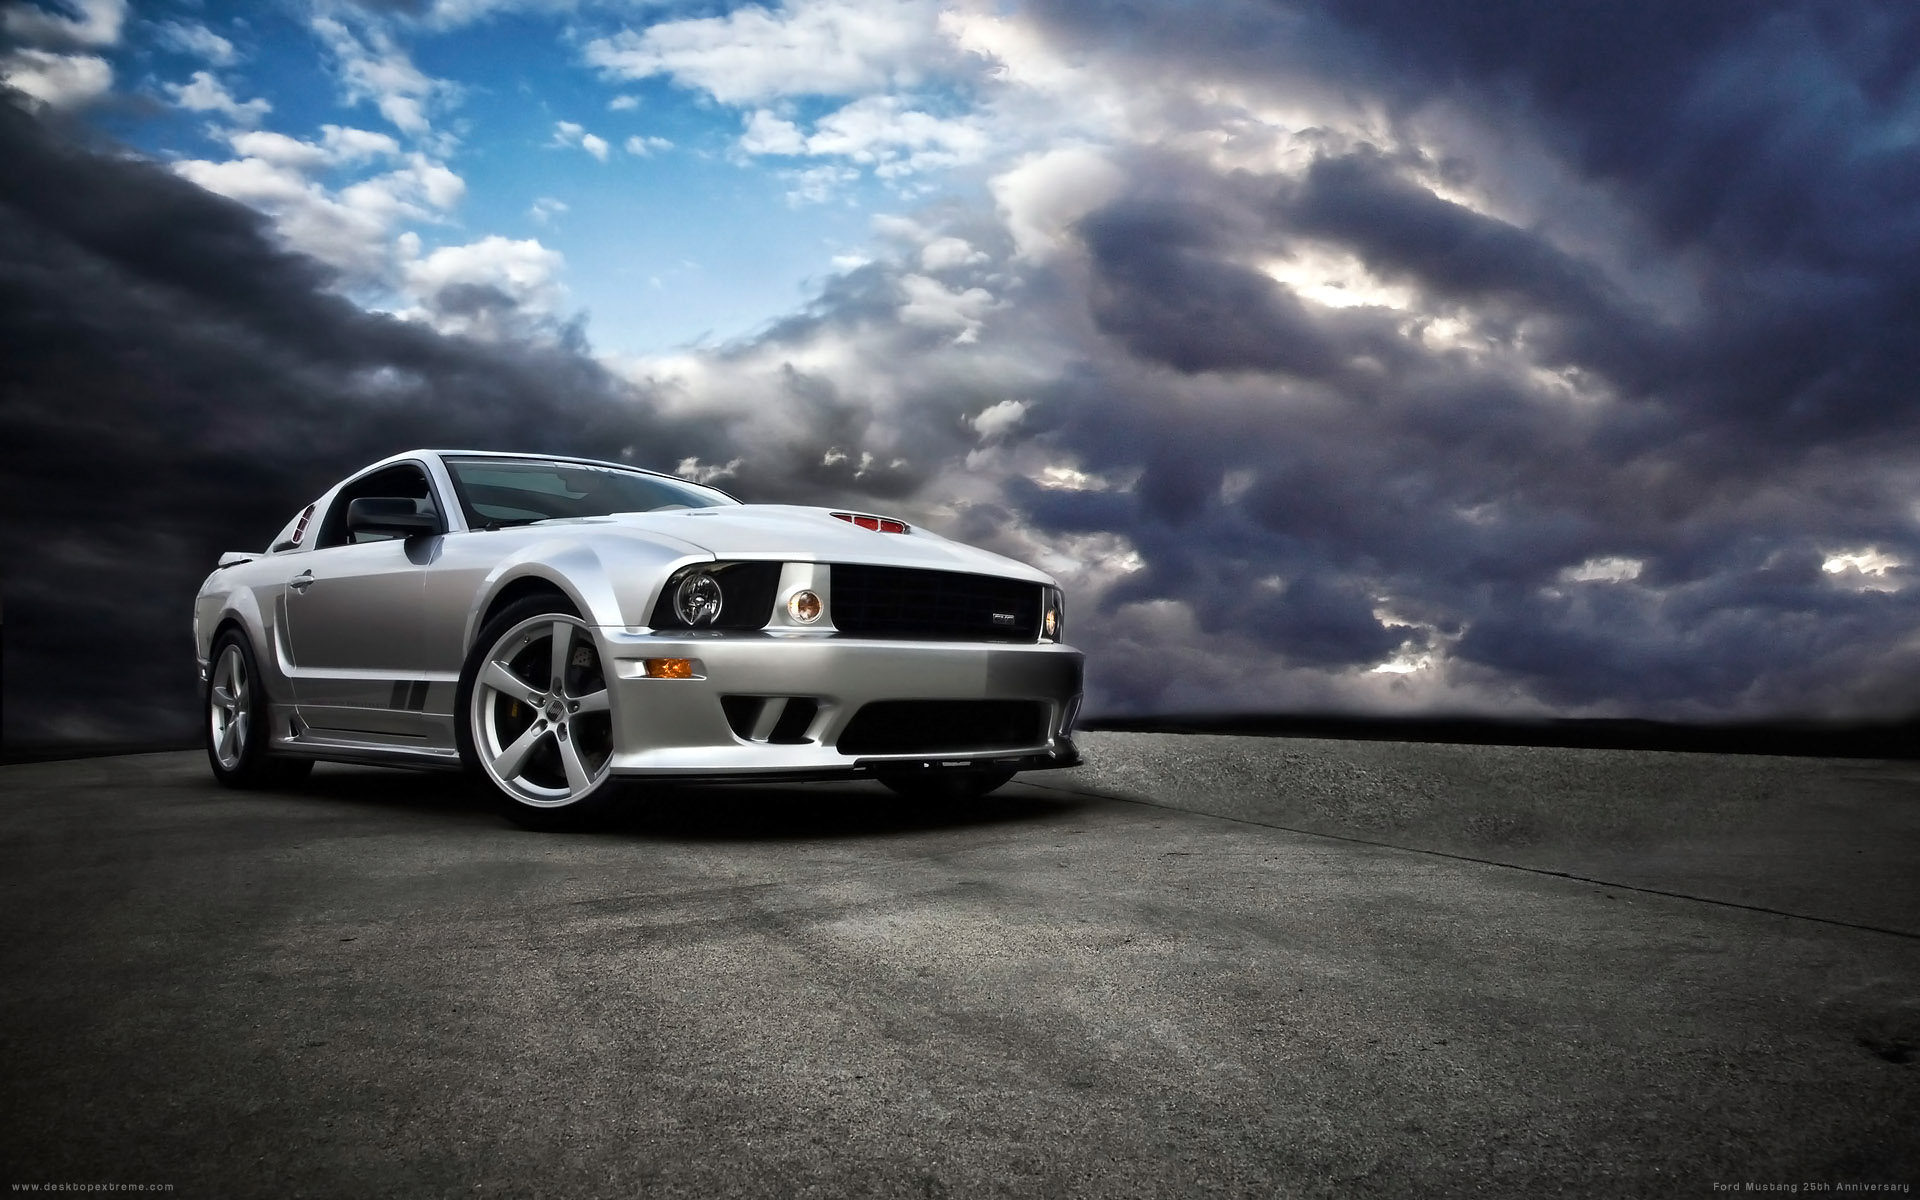 hd wallpaper mustang - sf wallpaper